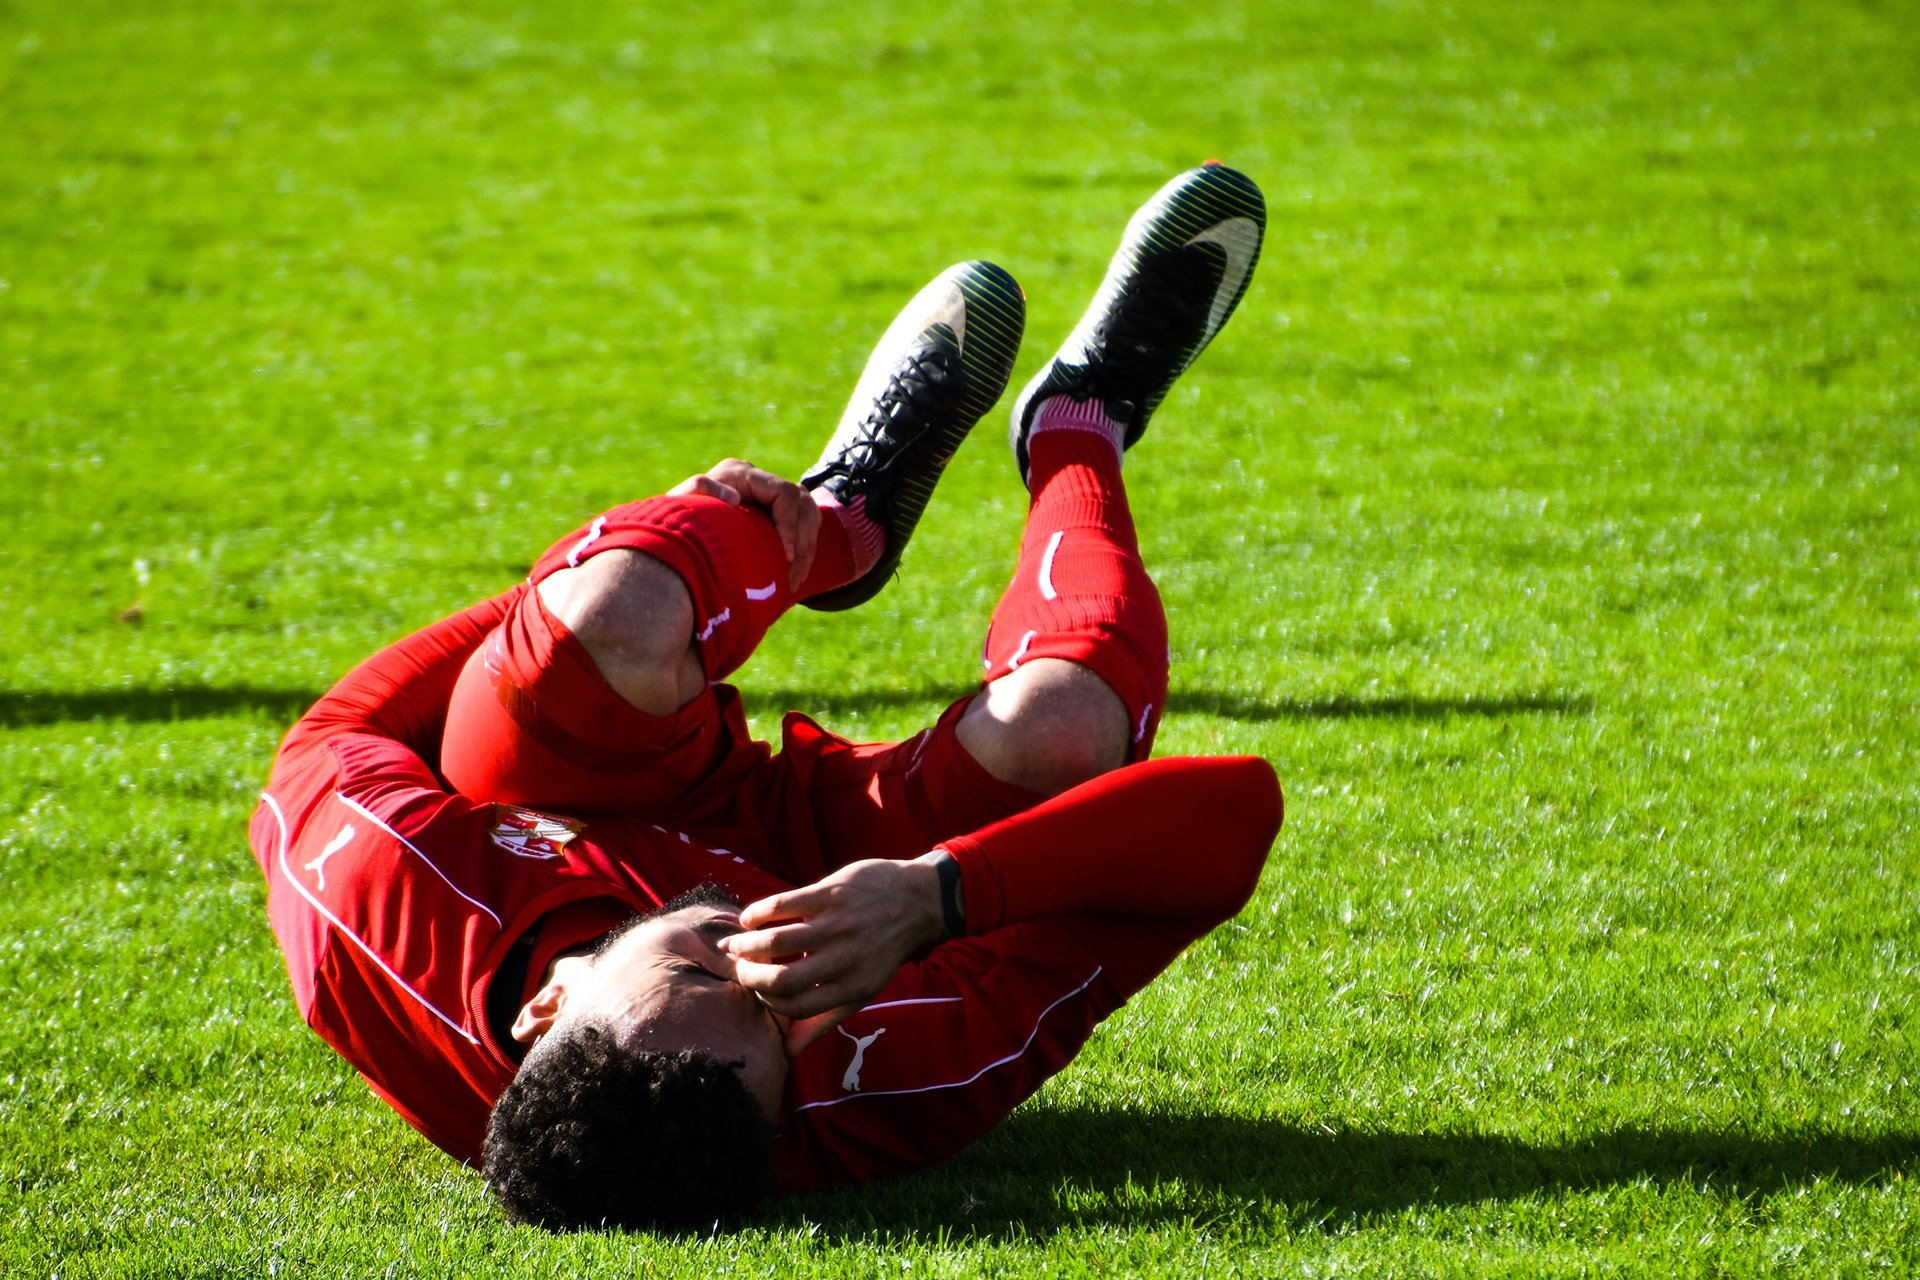 soccer player in pain